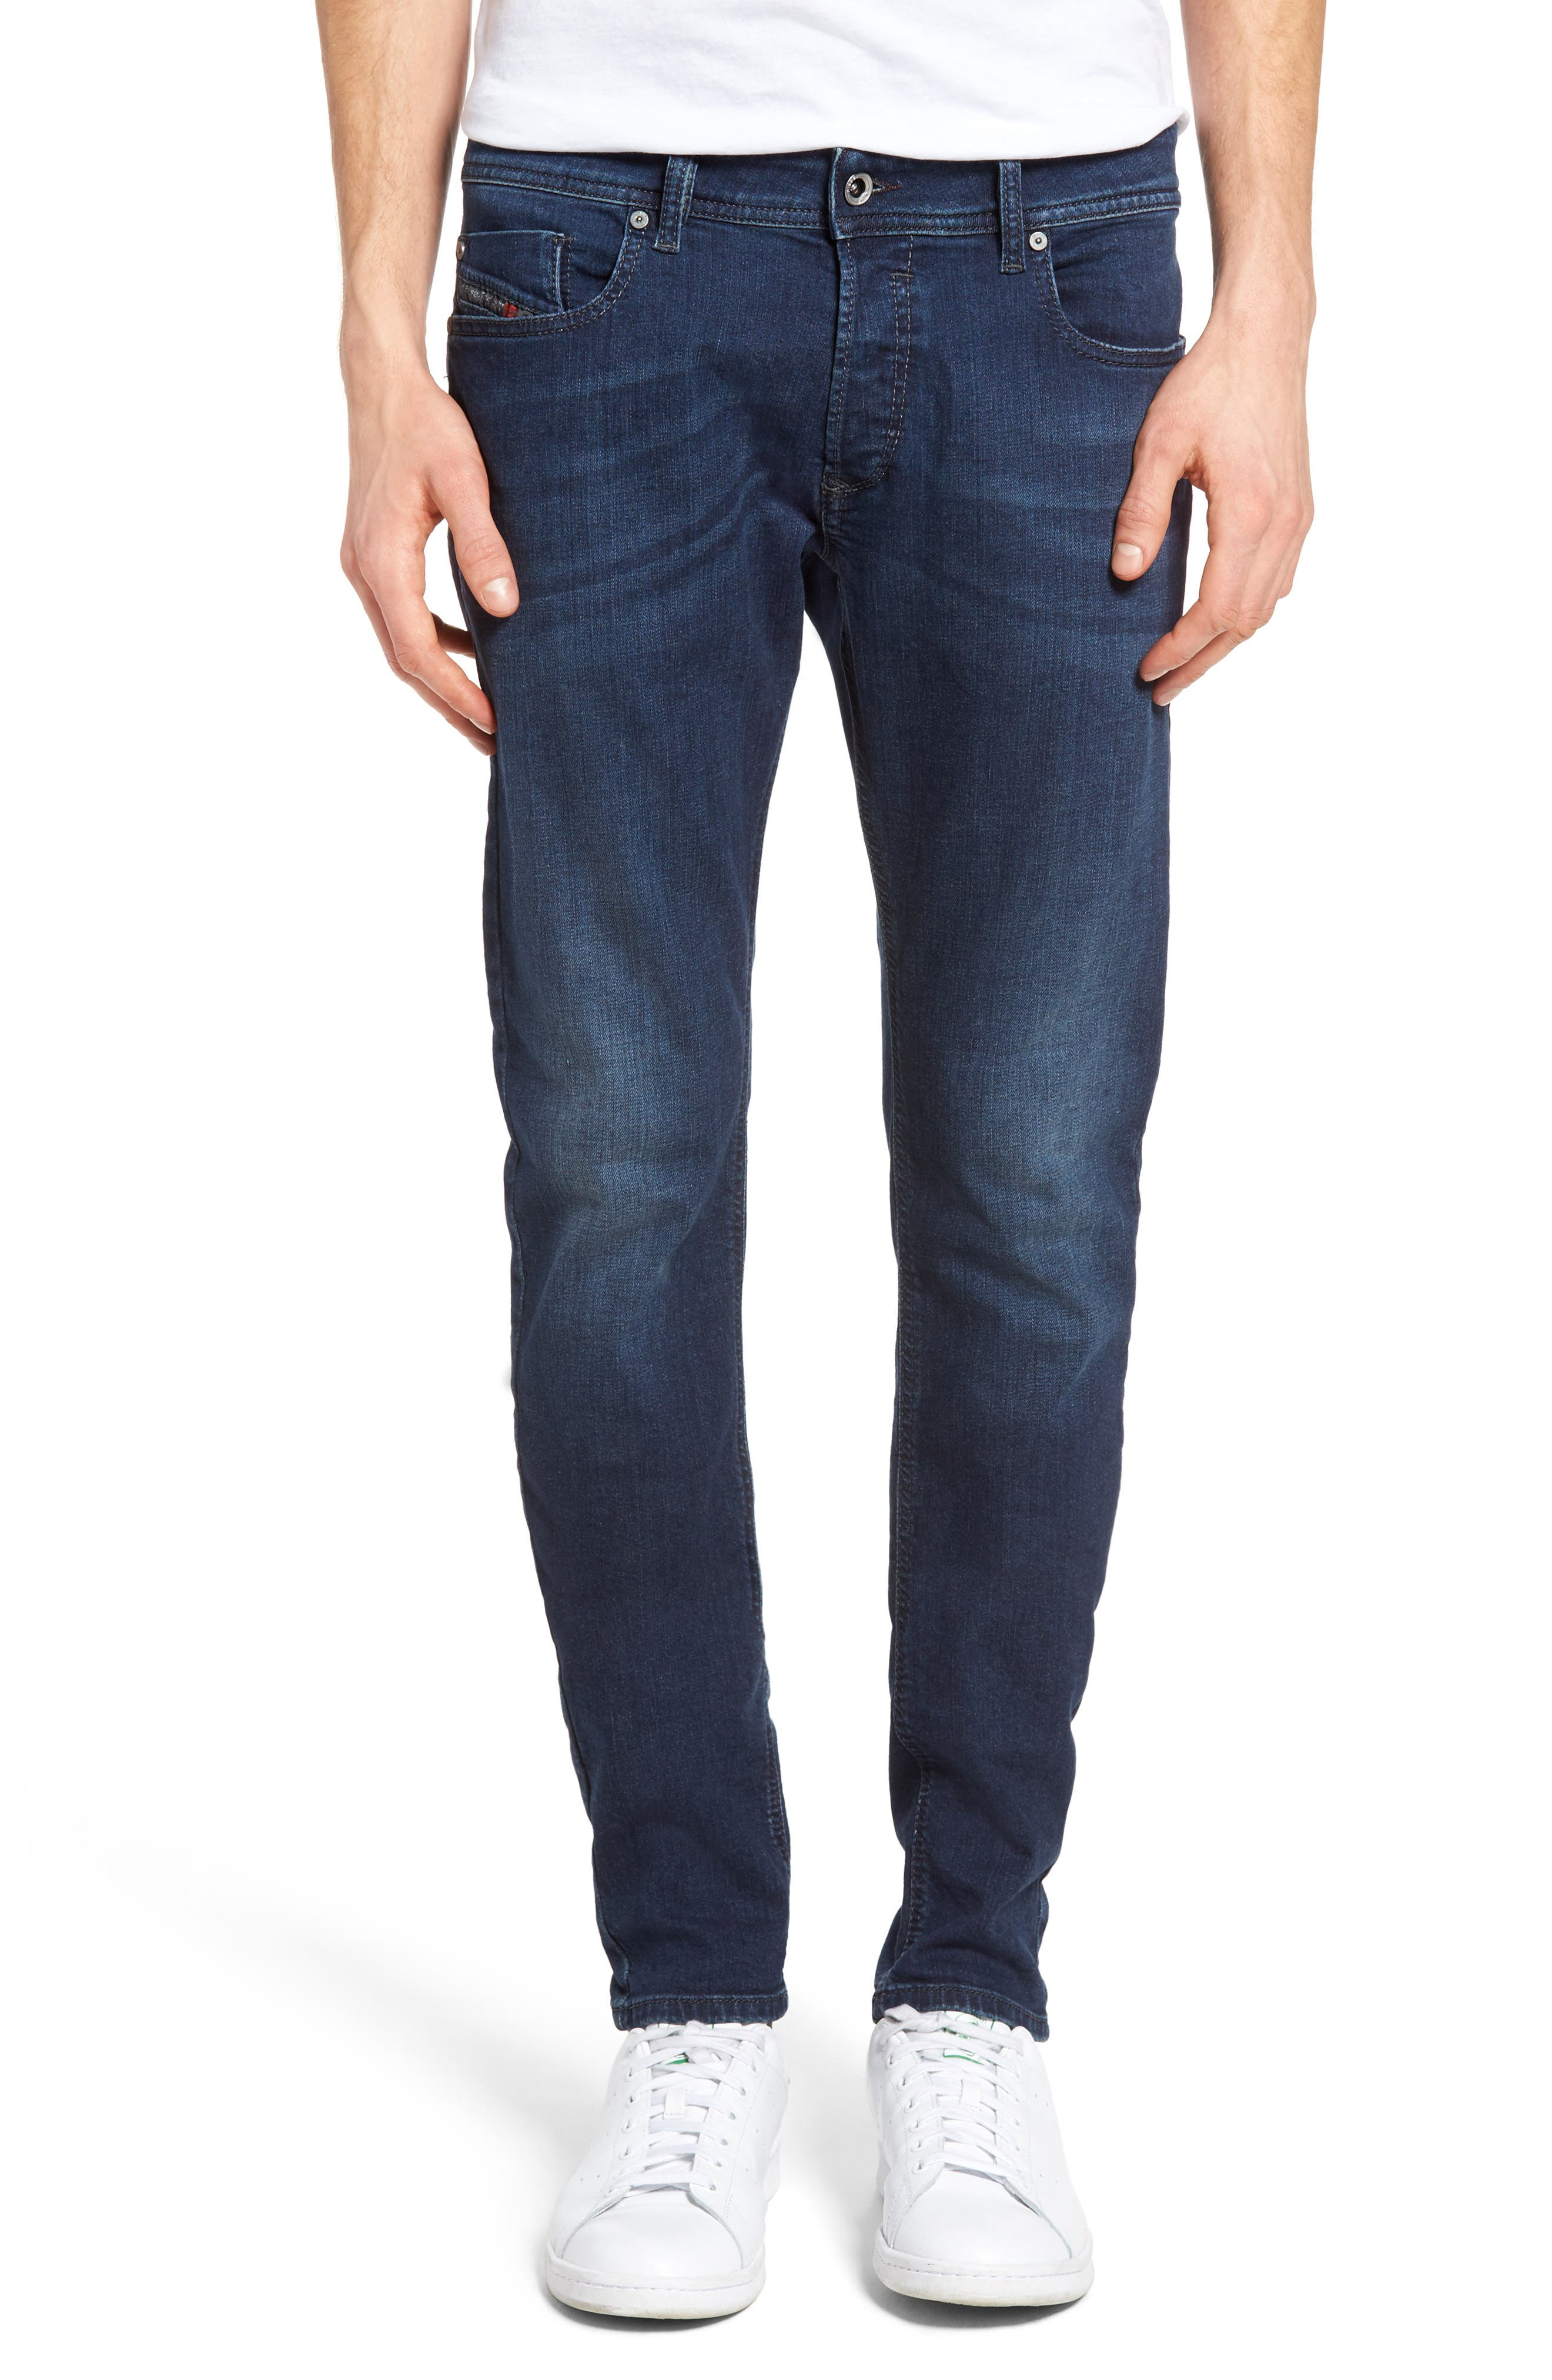 Sleenker Skinny Fit Jeans,                         Main,                         color, 400